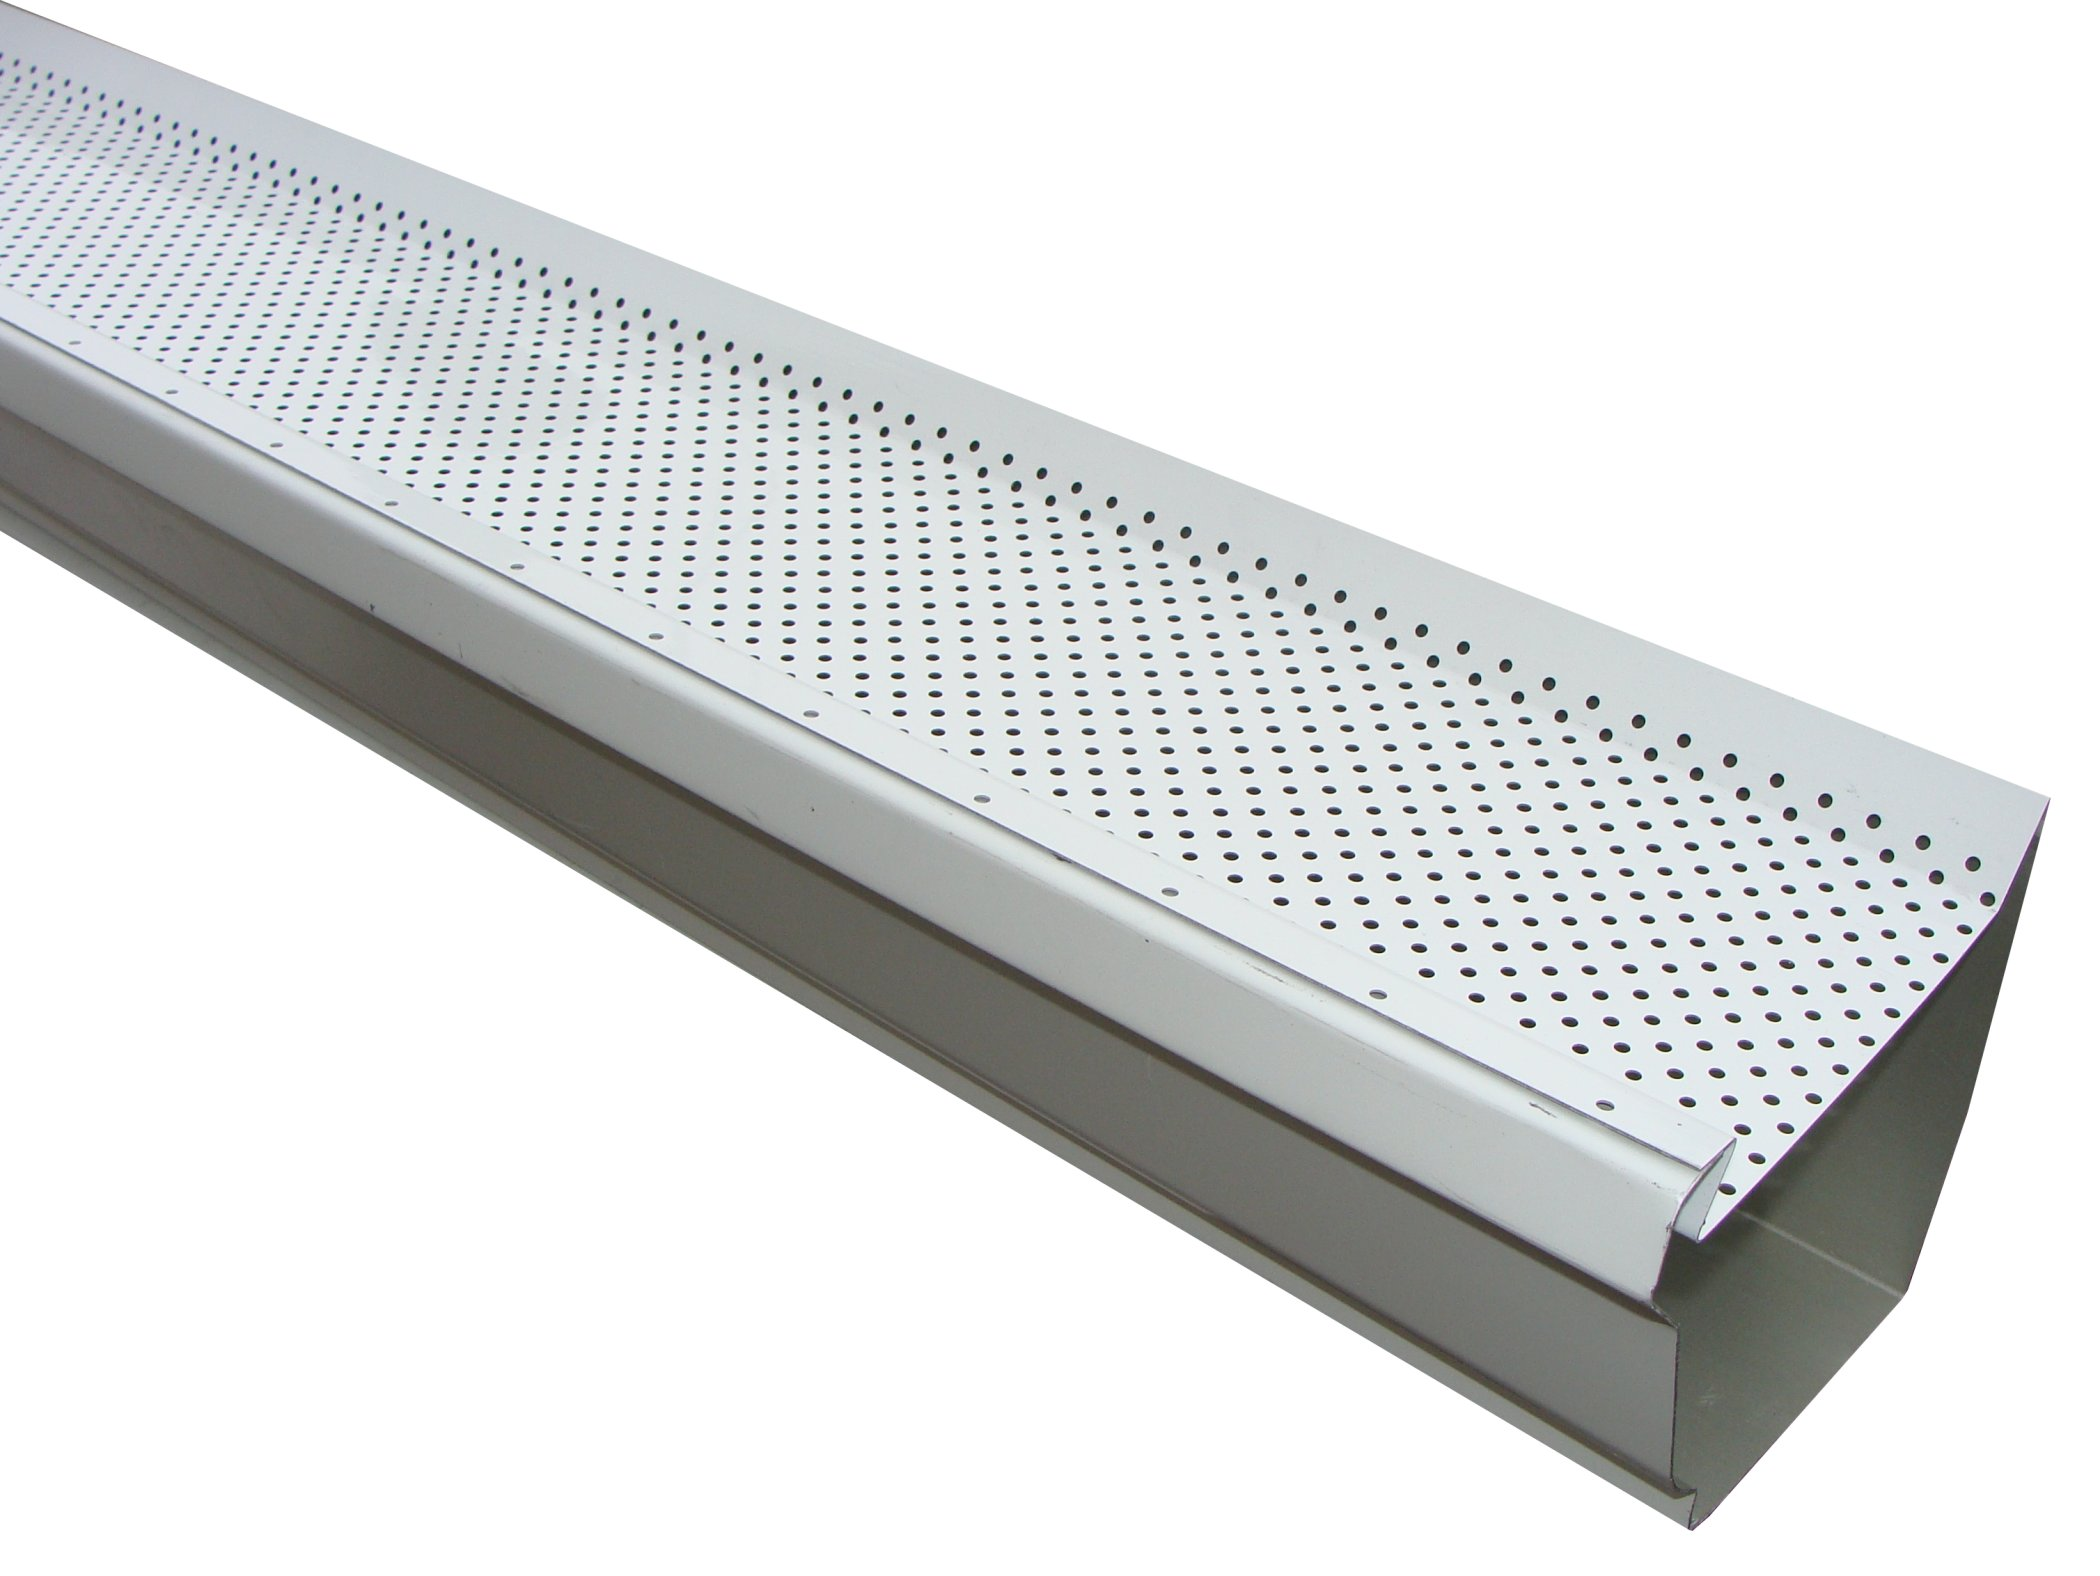 Leaf Defender Gutter Guard Keeps A Low Profile So It